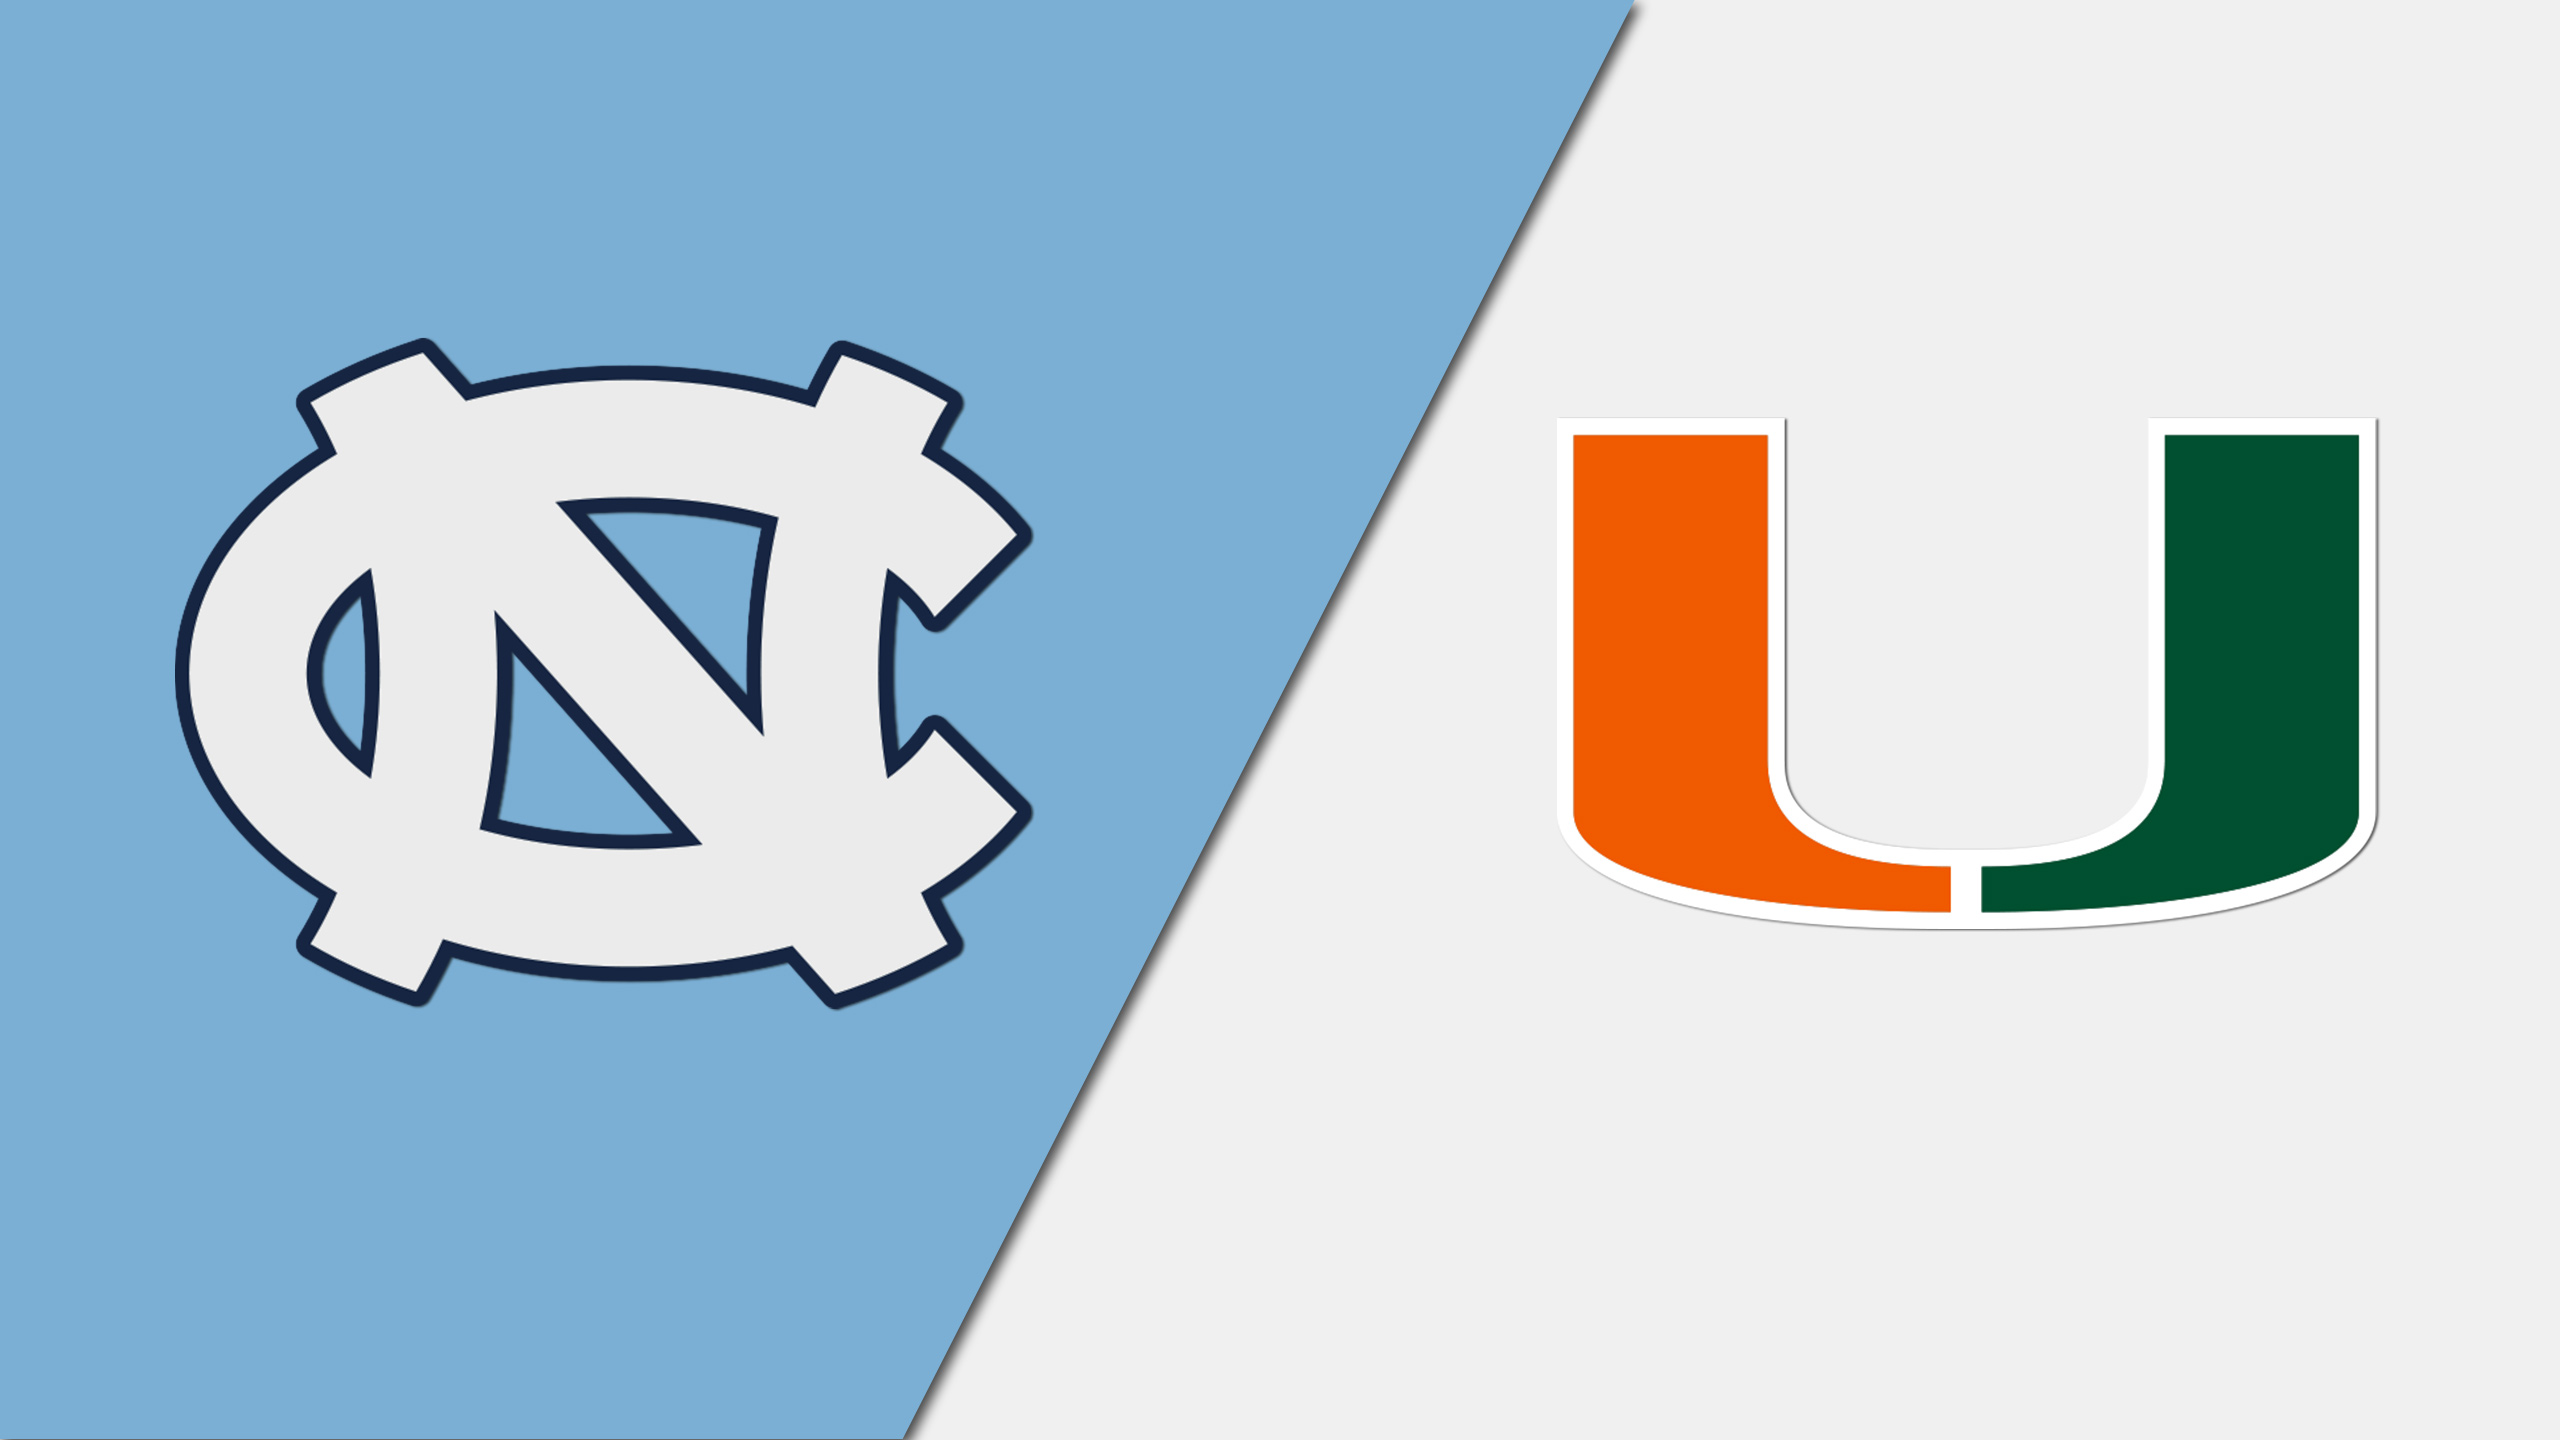 North Carolina vs. Miami (Pool D)